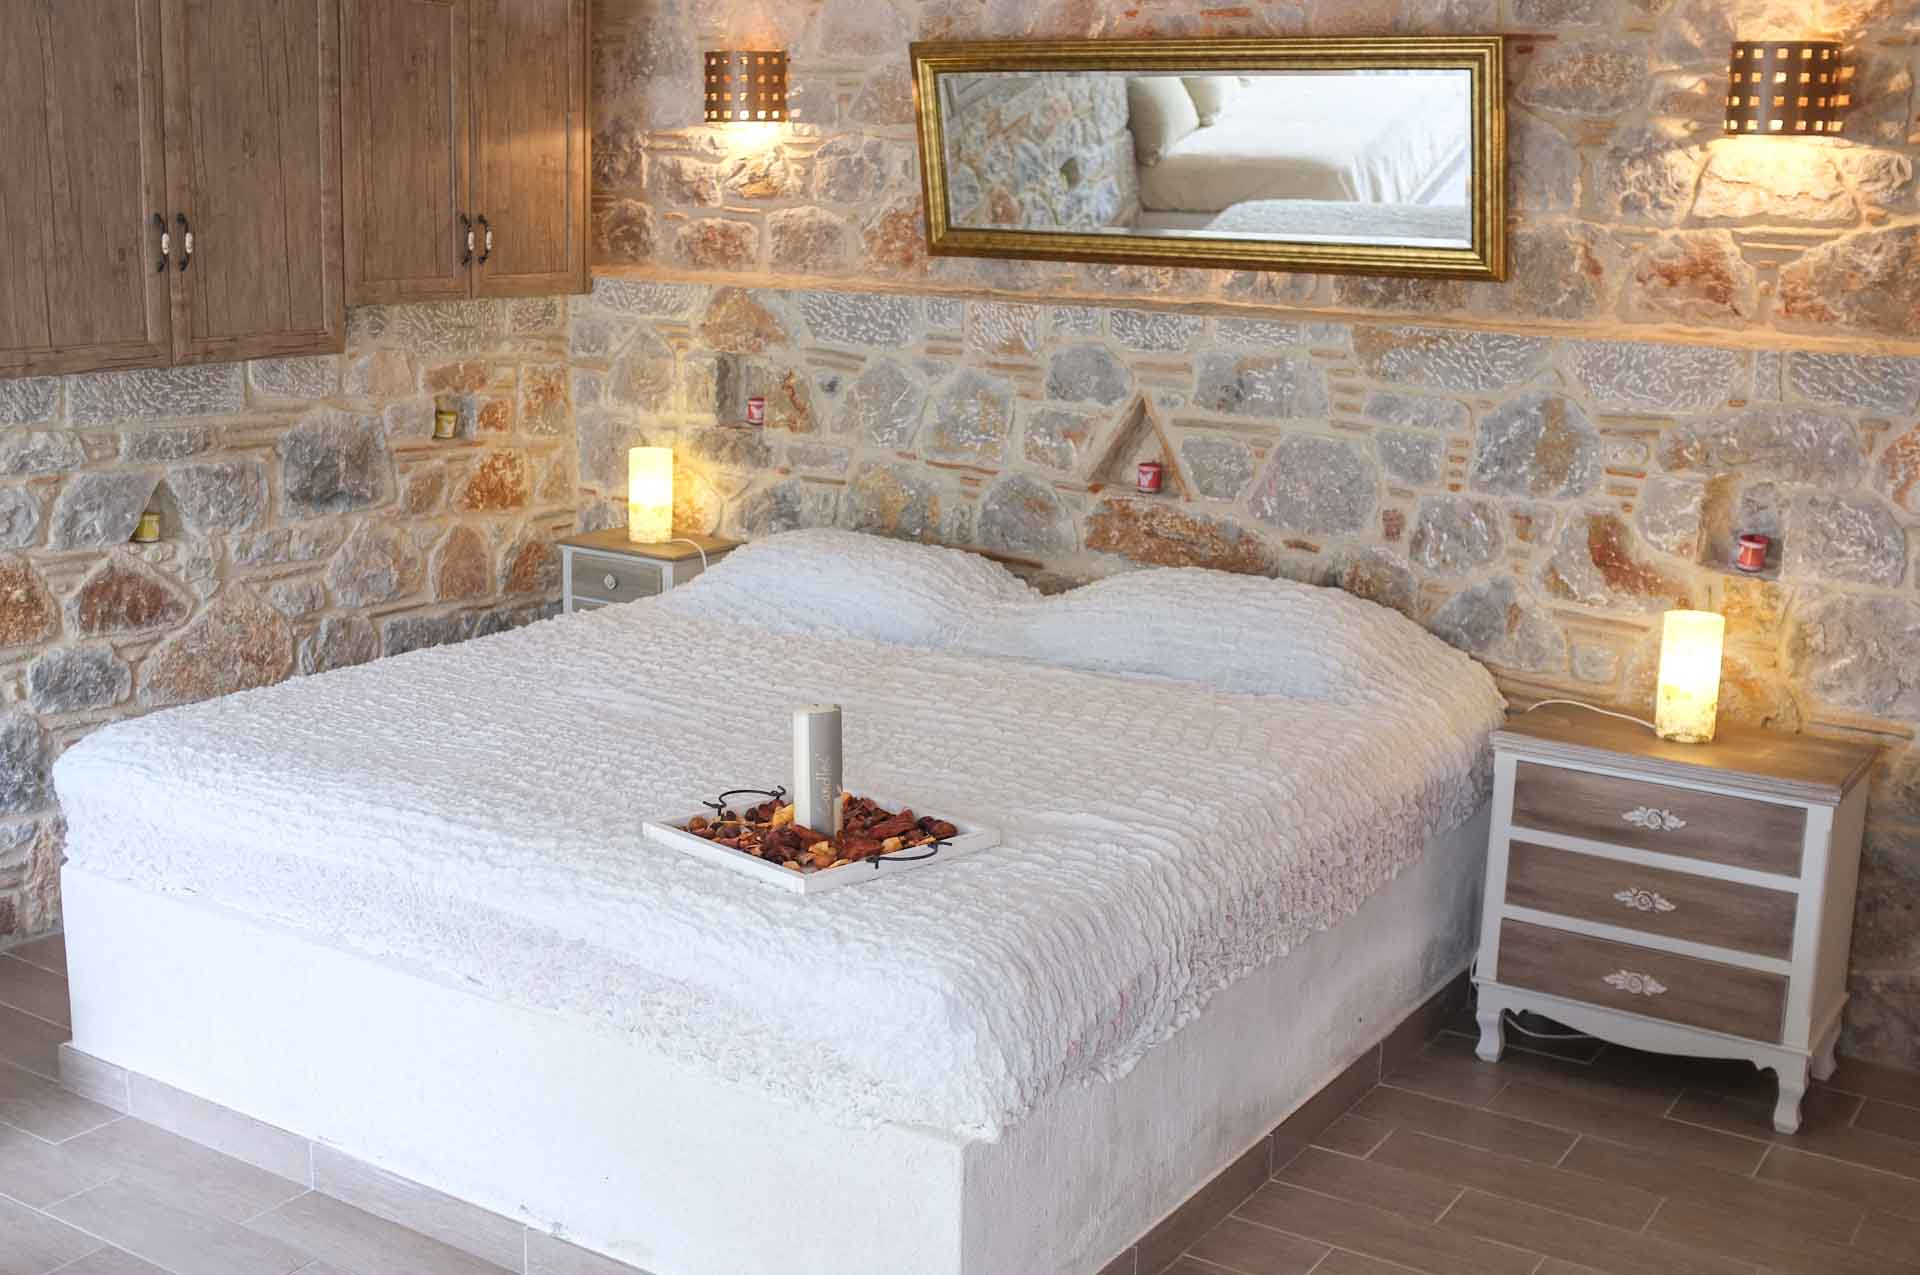 Built-in super king size bed